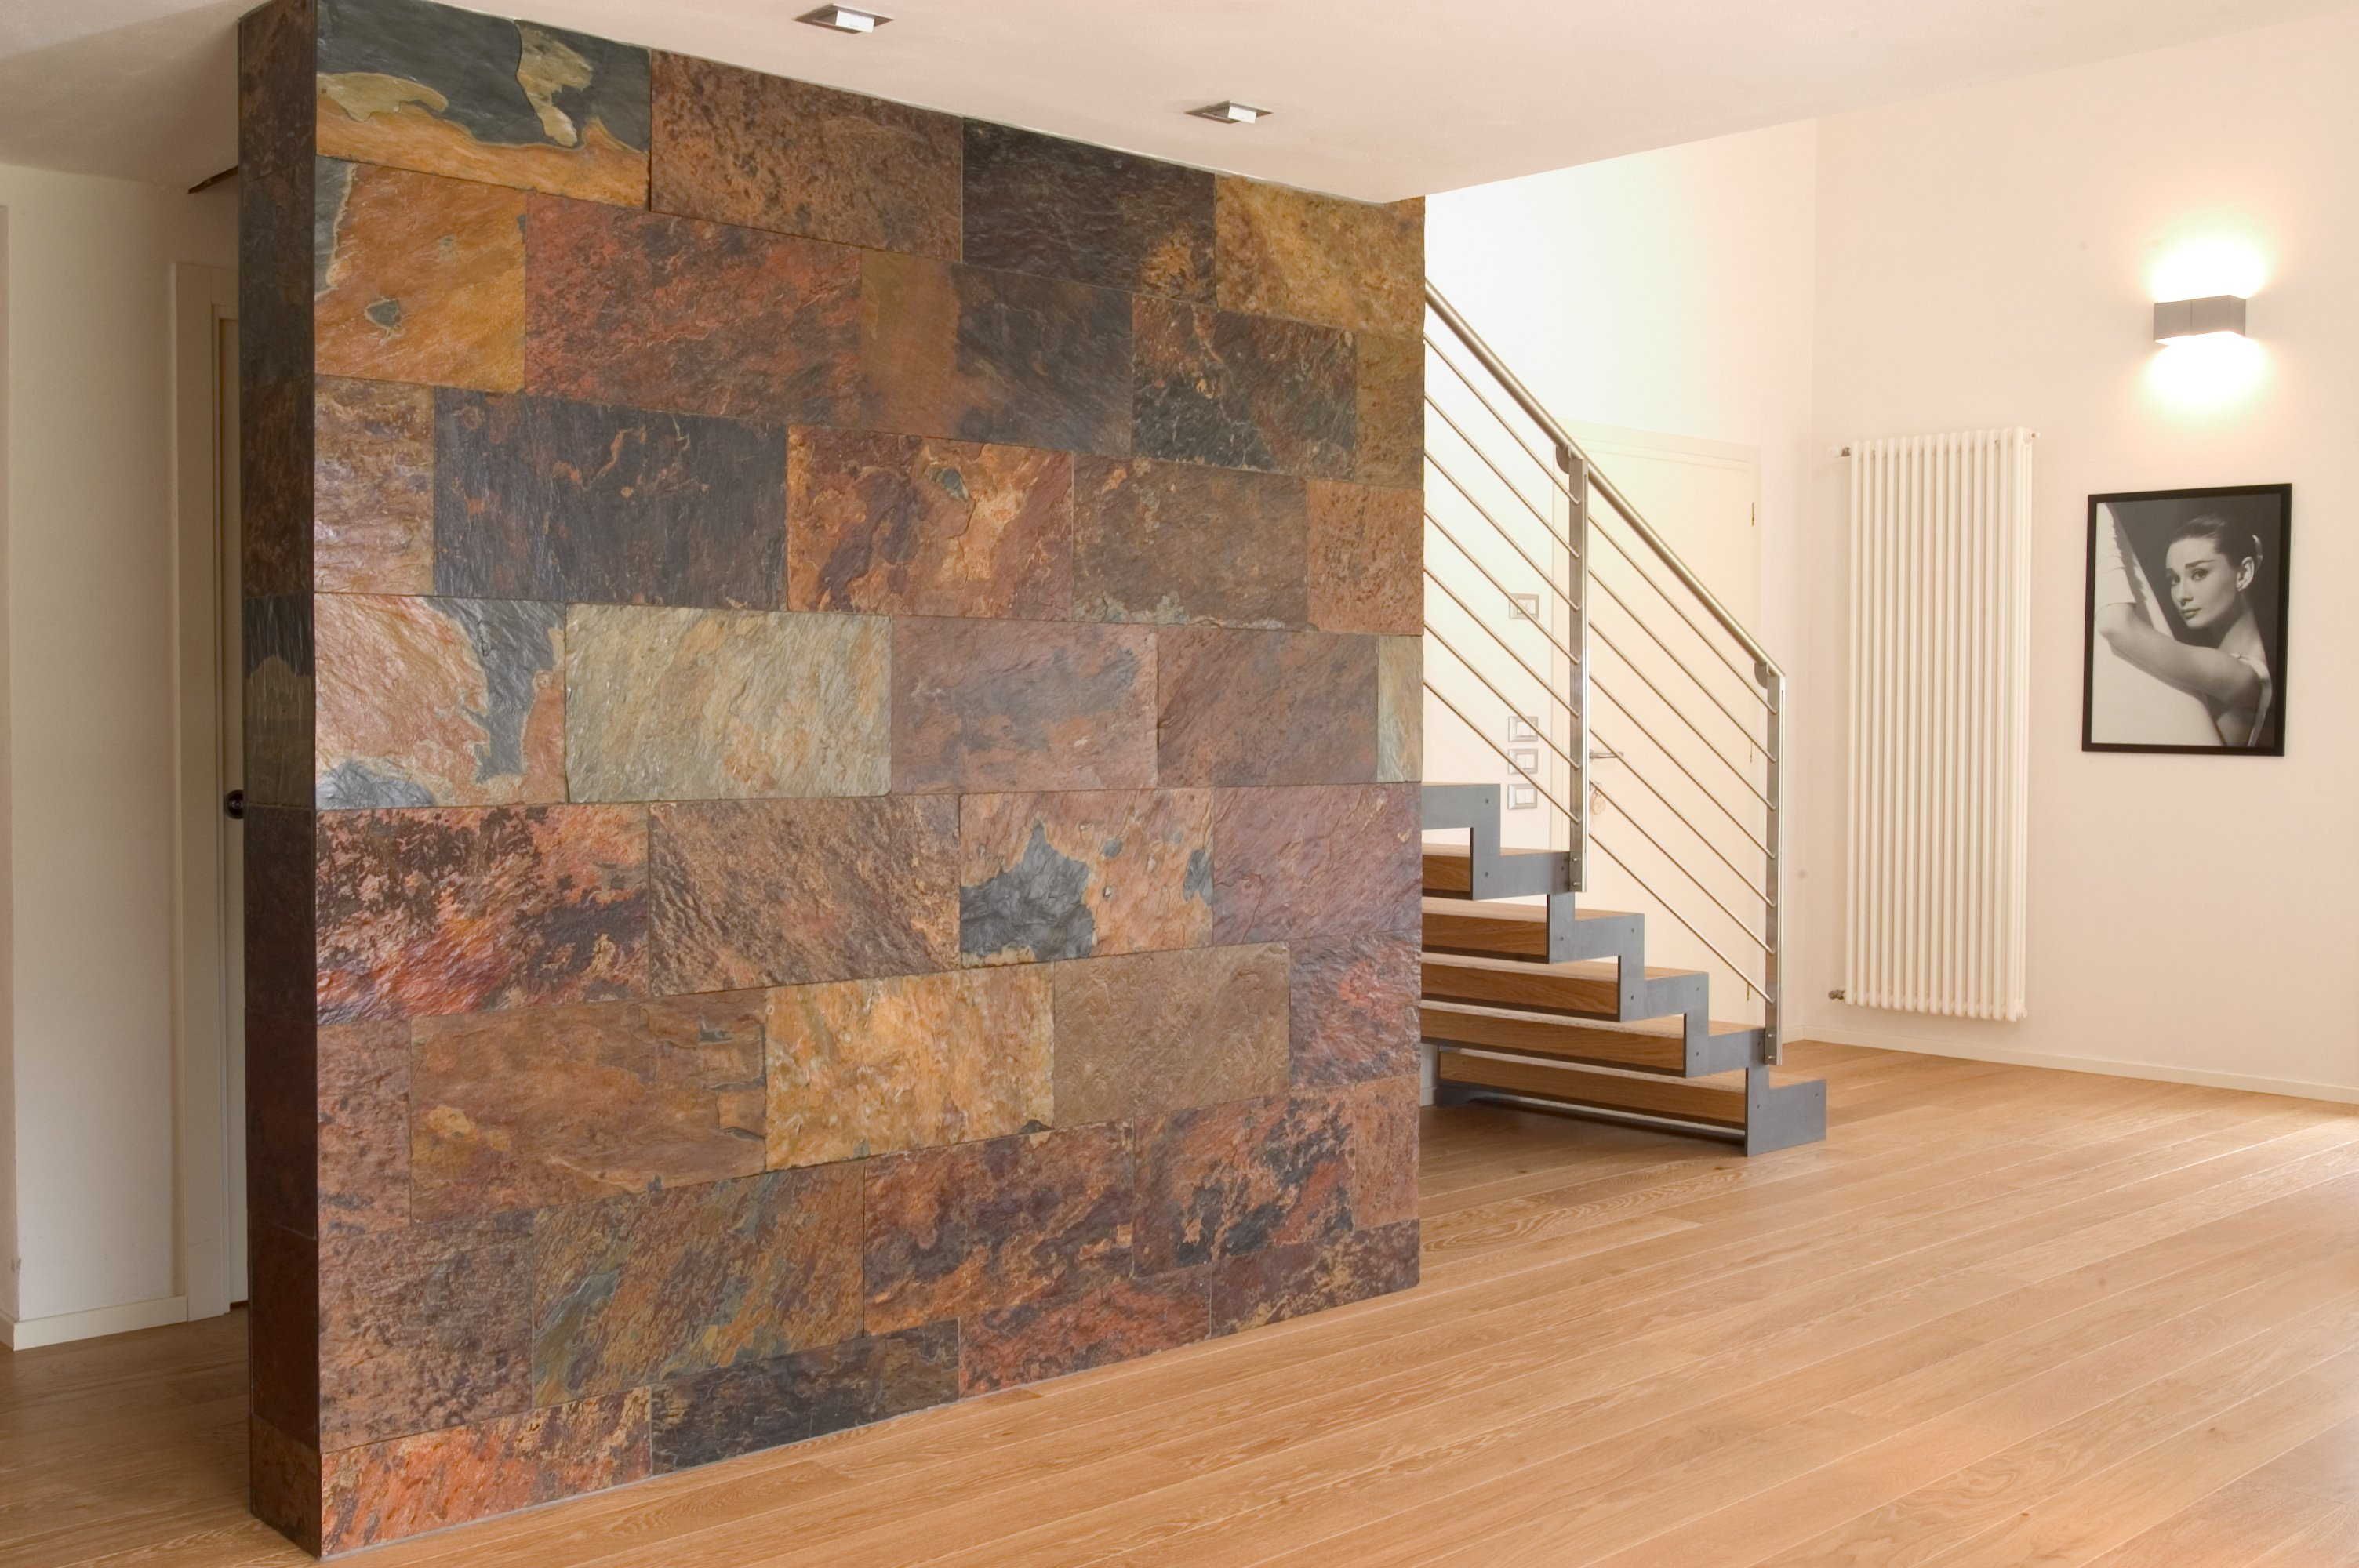 Revestimiento de pared suelo de piedra african sunset by for Revestimiento piedra interior